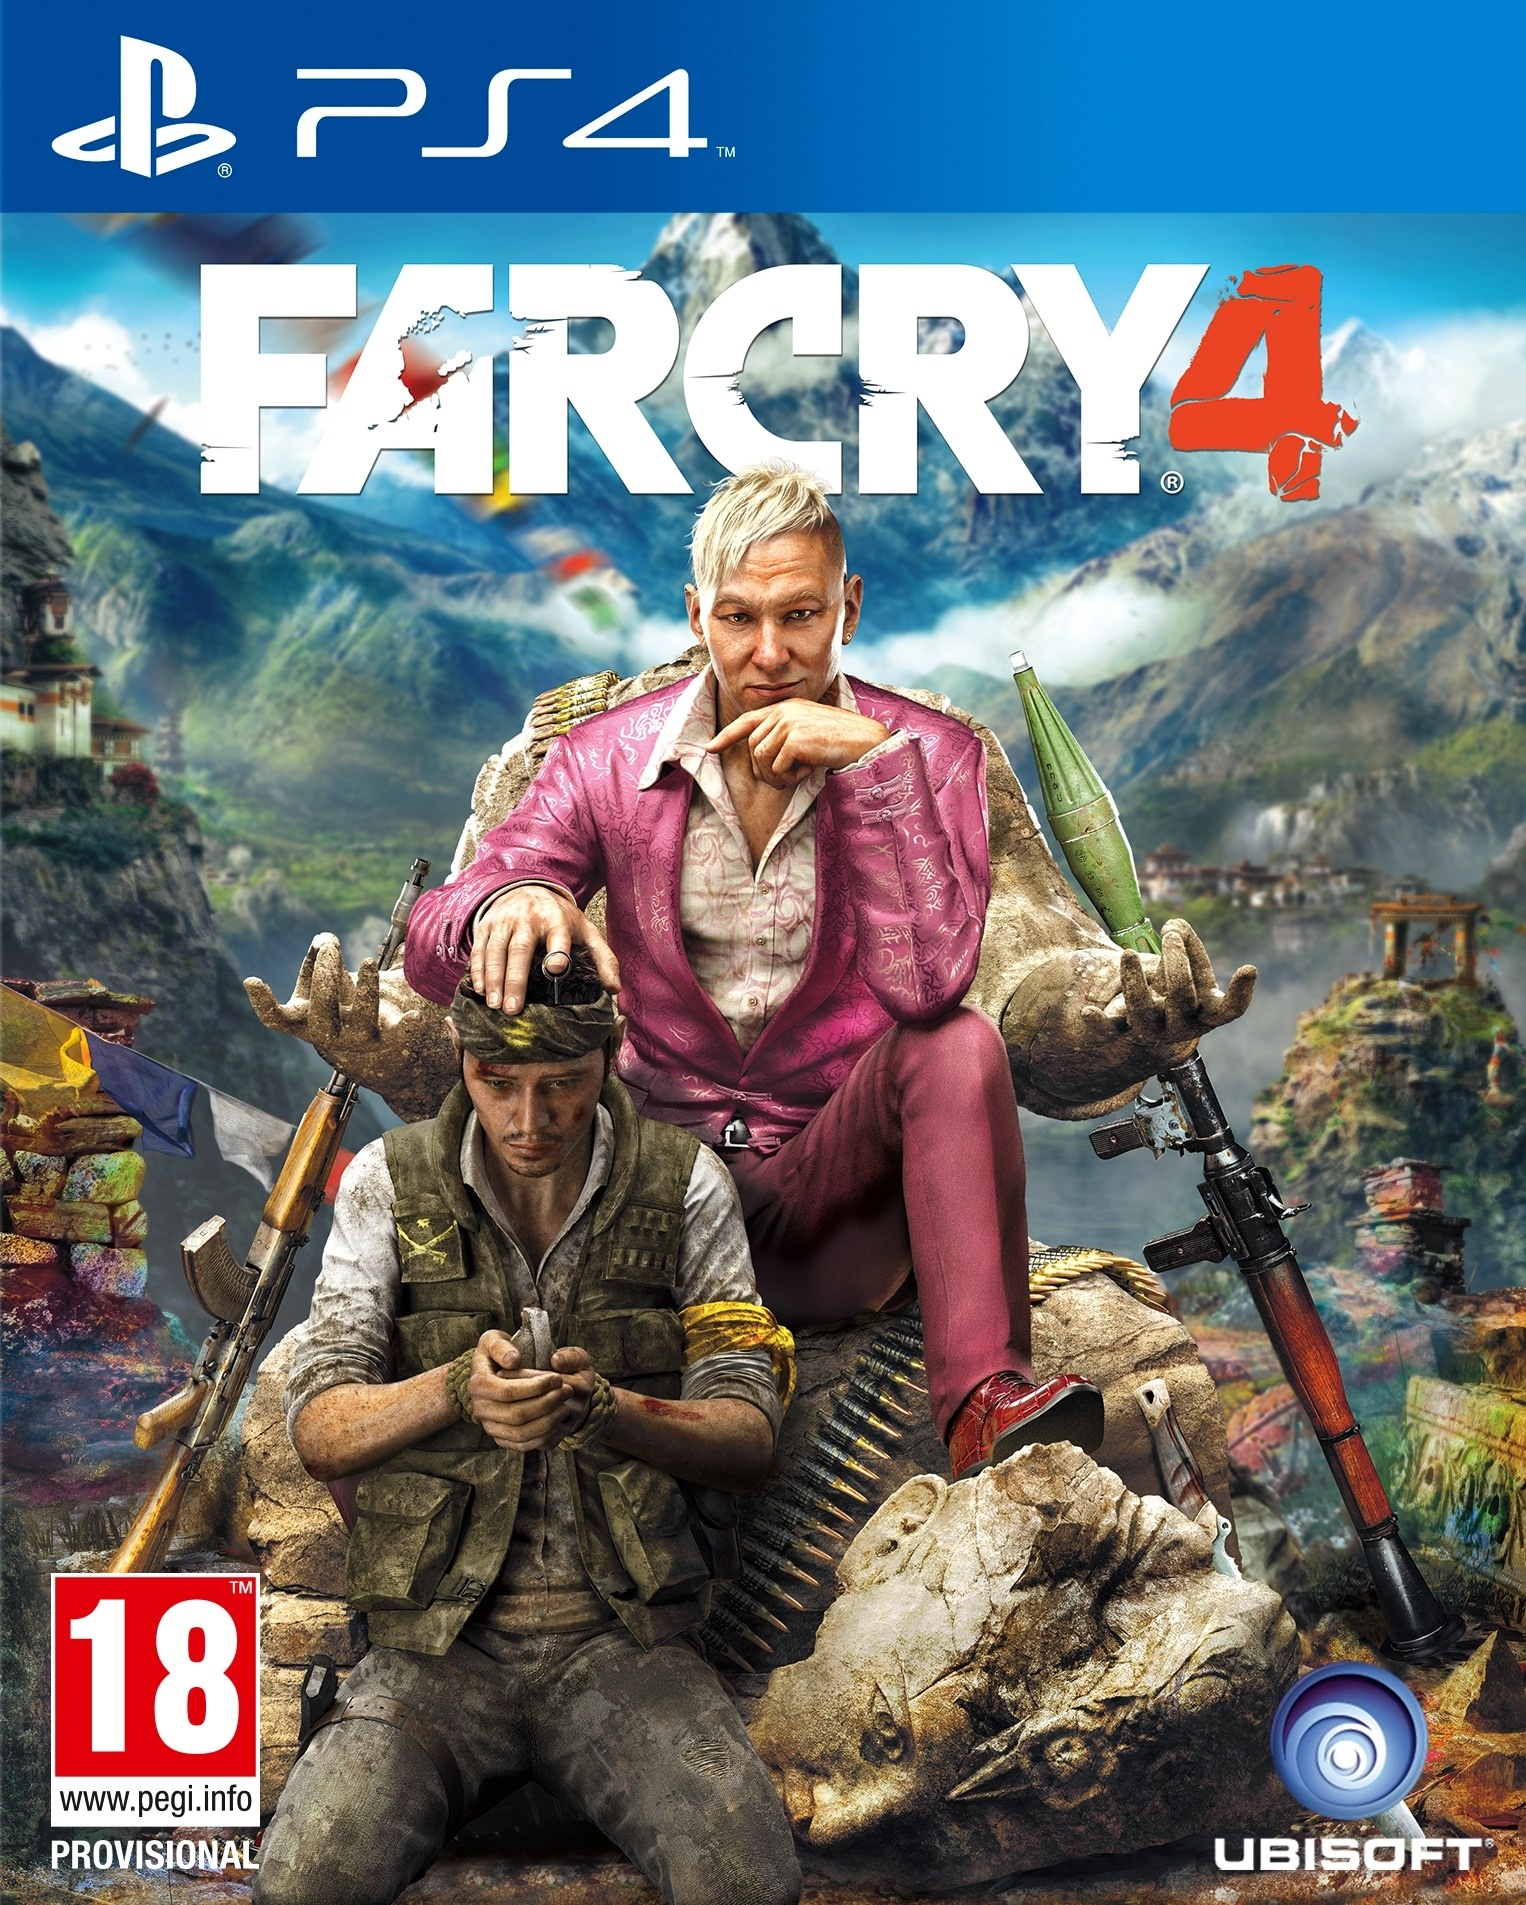 Far Cry 4 - Gold Edition [PS4] 5.05 / 6.72 / 7.02 [EUR] (2014) [Русский] (v1.07)